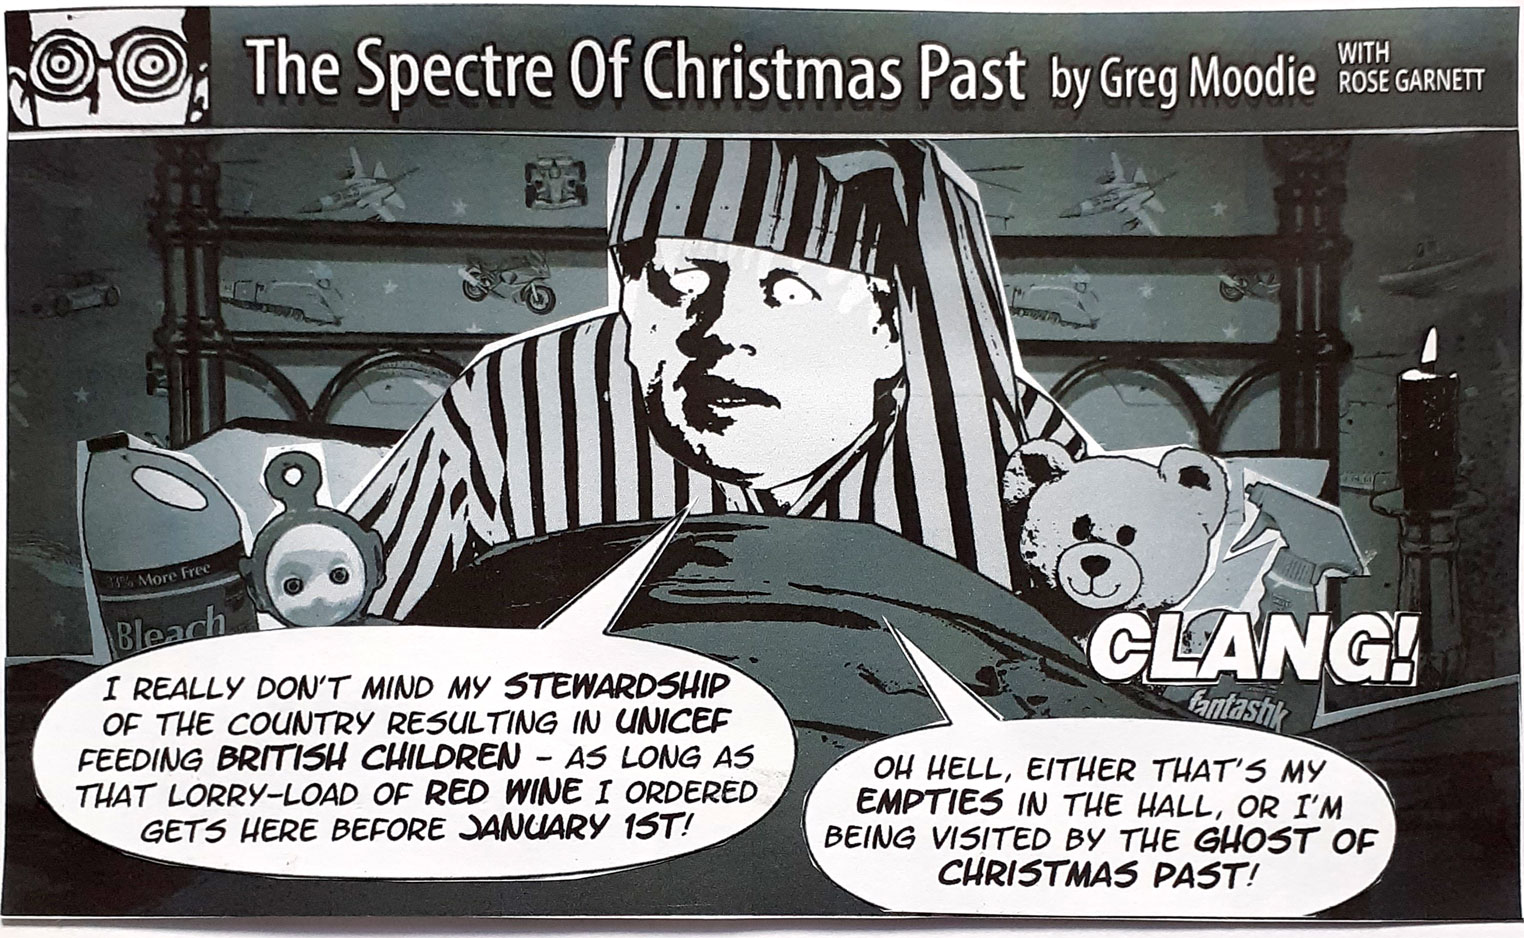 The Spectre Of Christmas Past